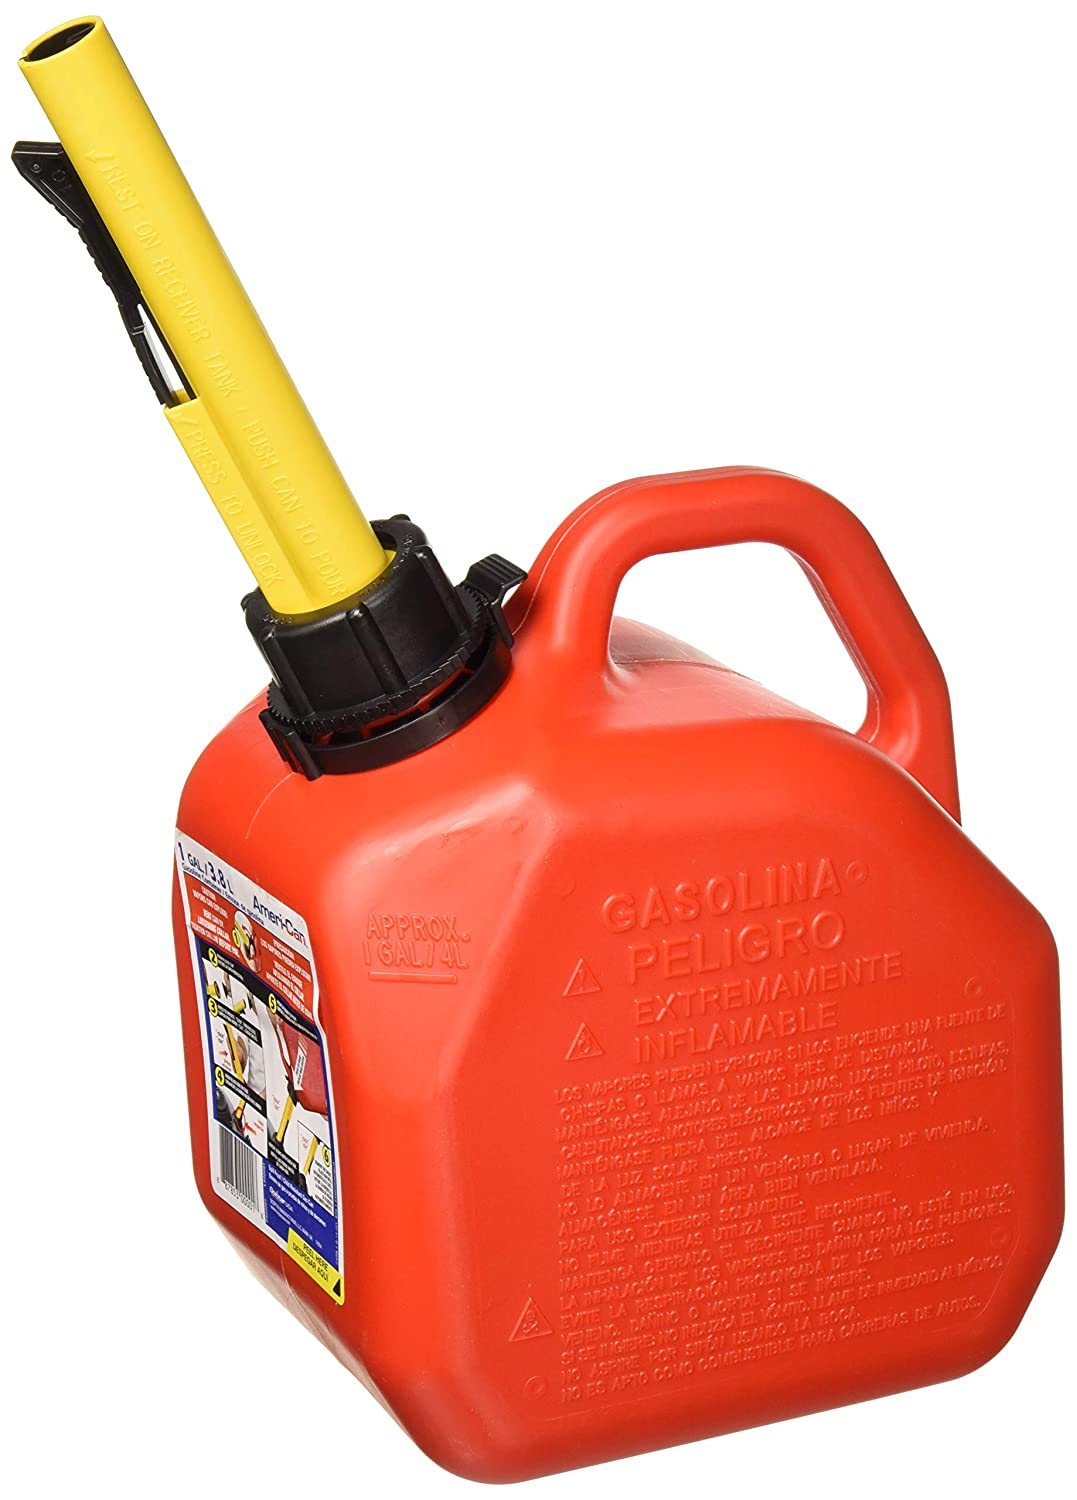 Scepter 00001 Lawn and Garden Tool Gas Cans